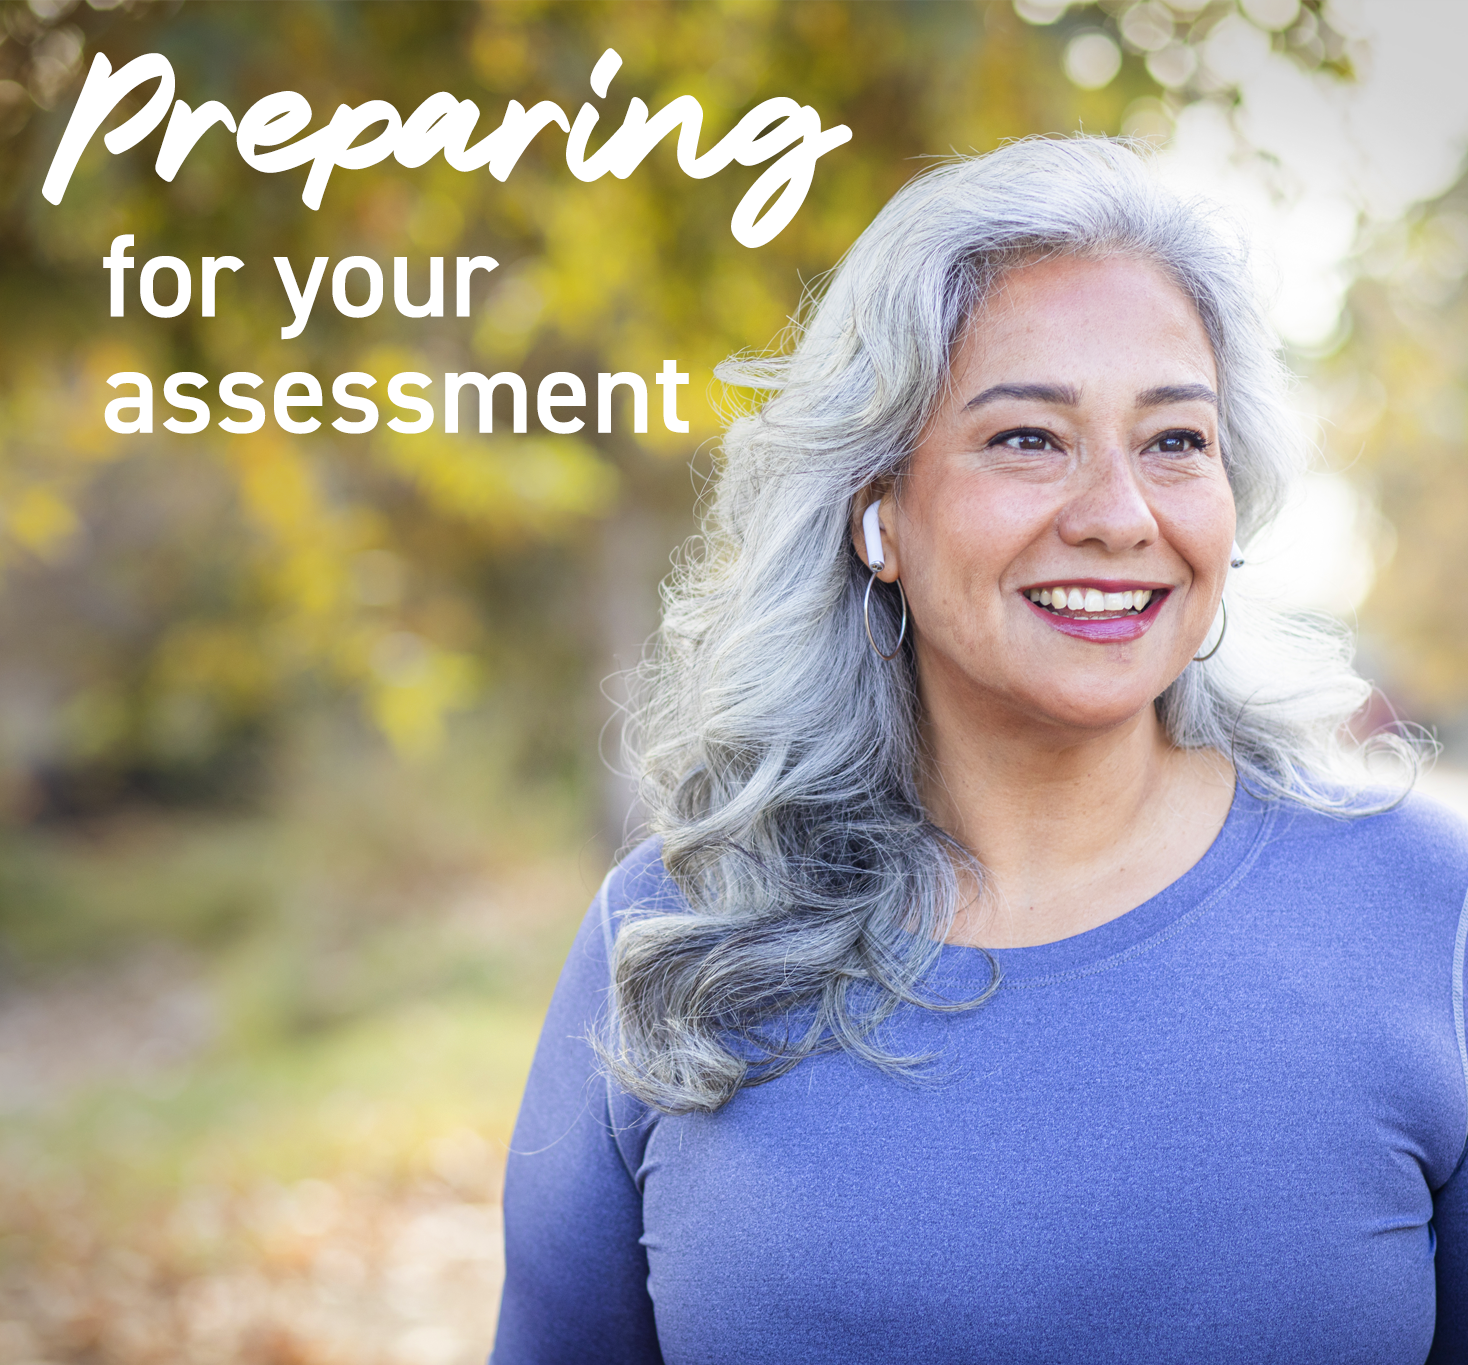 Preparing your assessment image